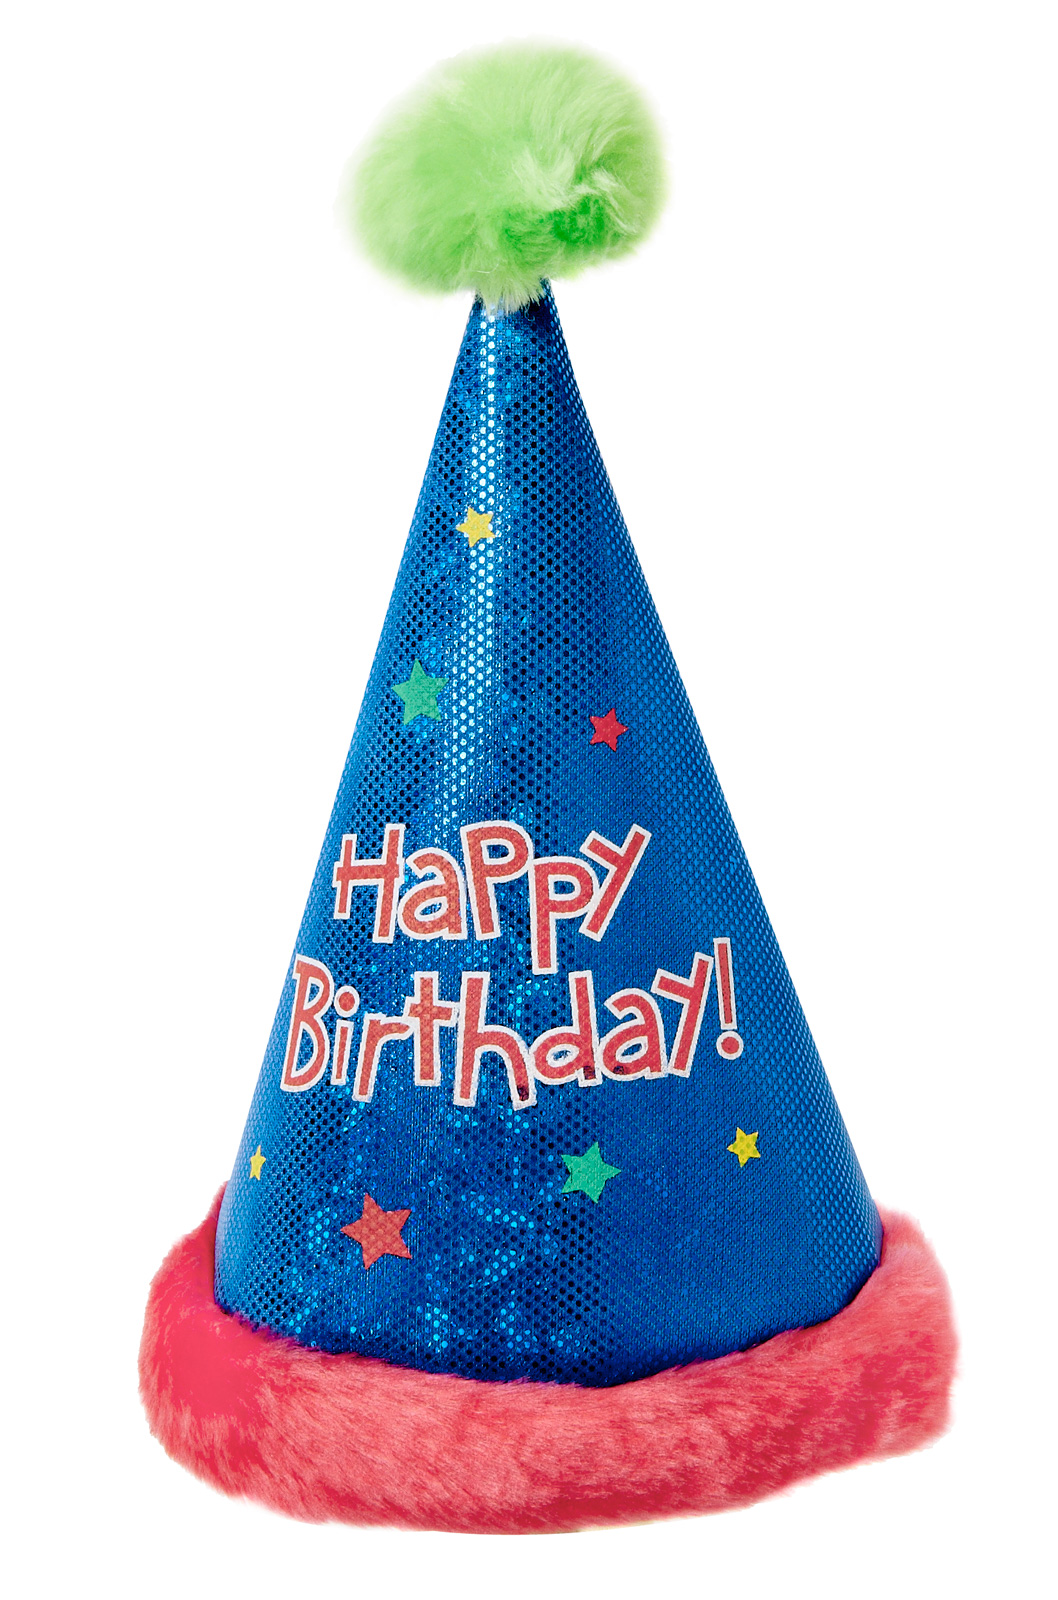 Birthday Hat Designs Png image #20307